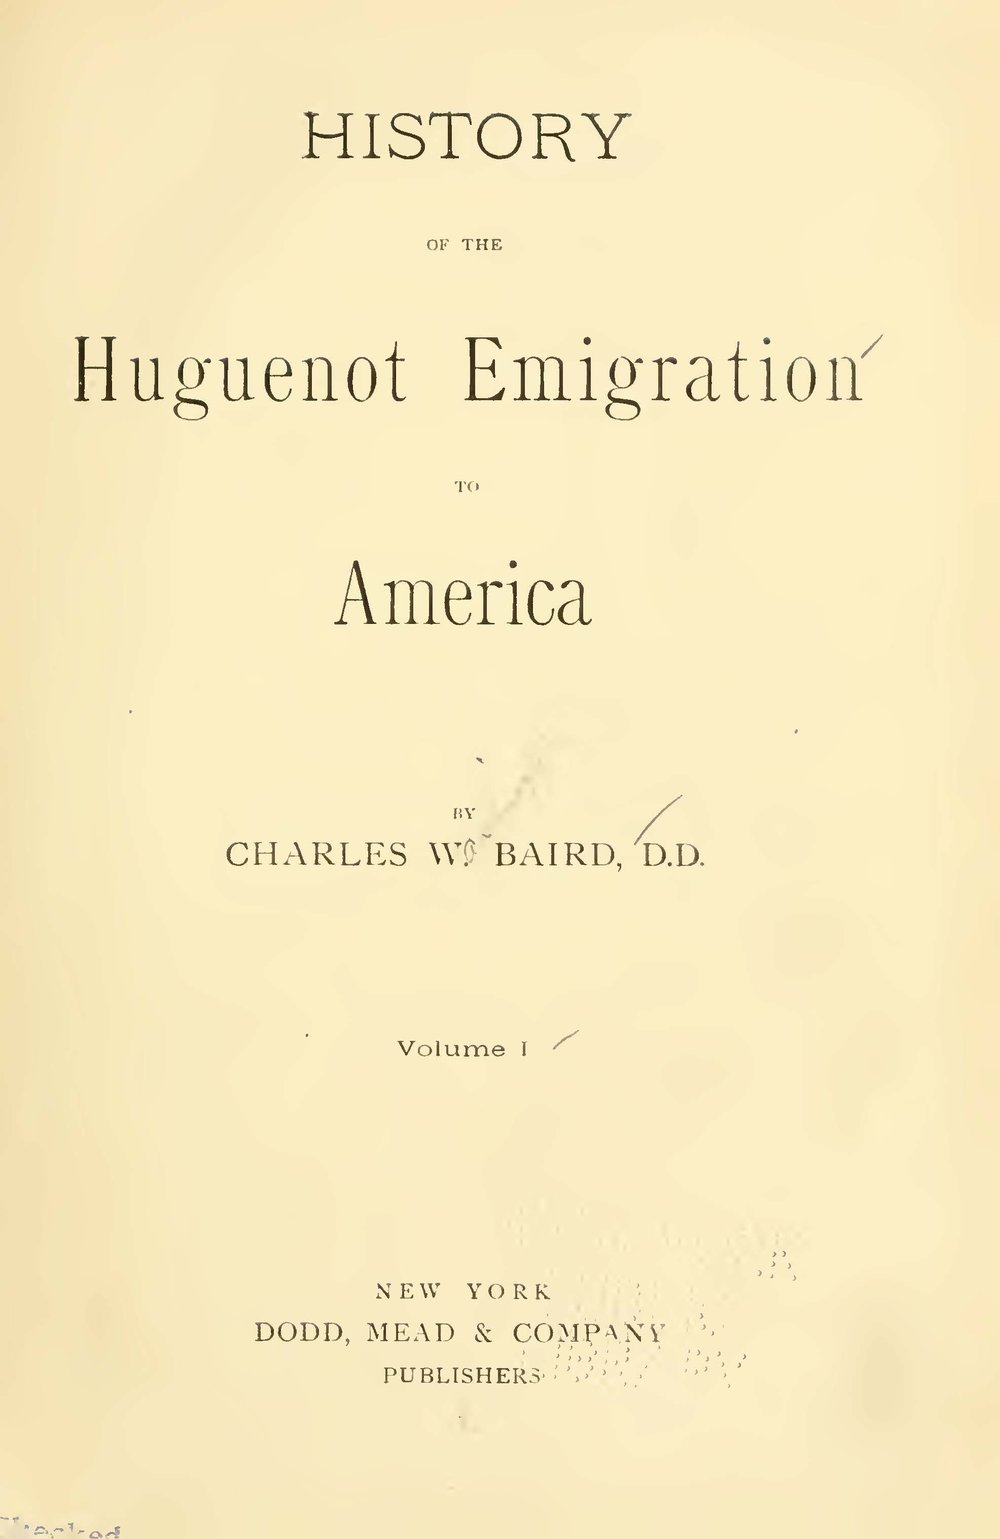 Baird, Charles Washington, History of the Huguenot Emigration to America, Vol. 1 Title Page.jpg